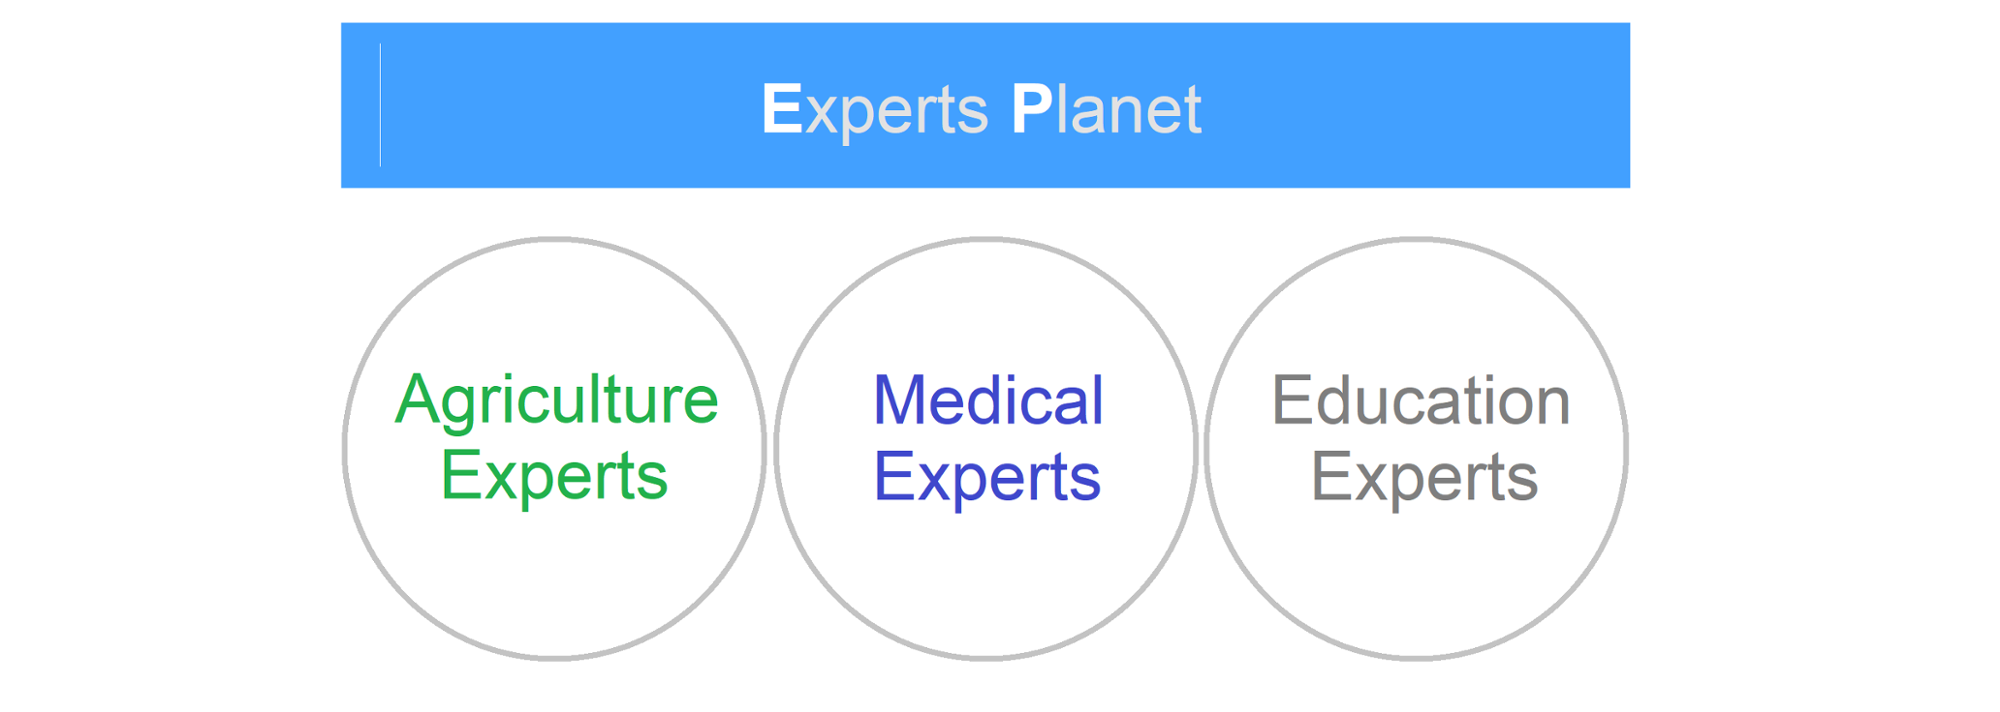 experts_planet_Alibaba2.png